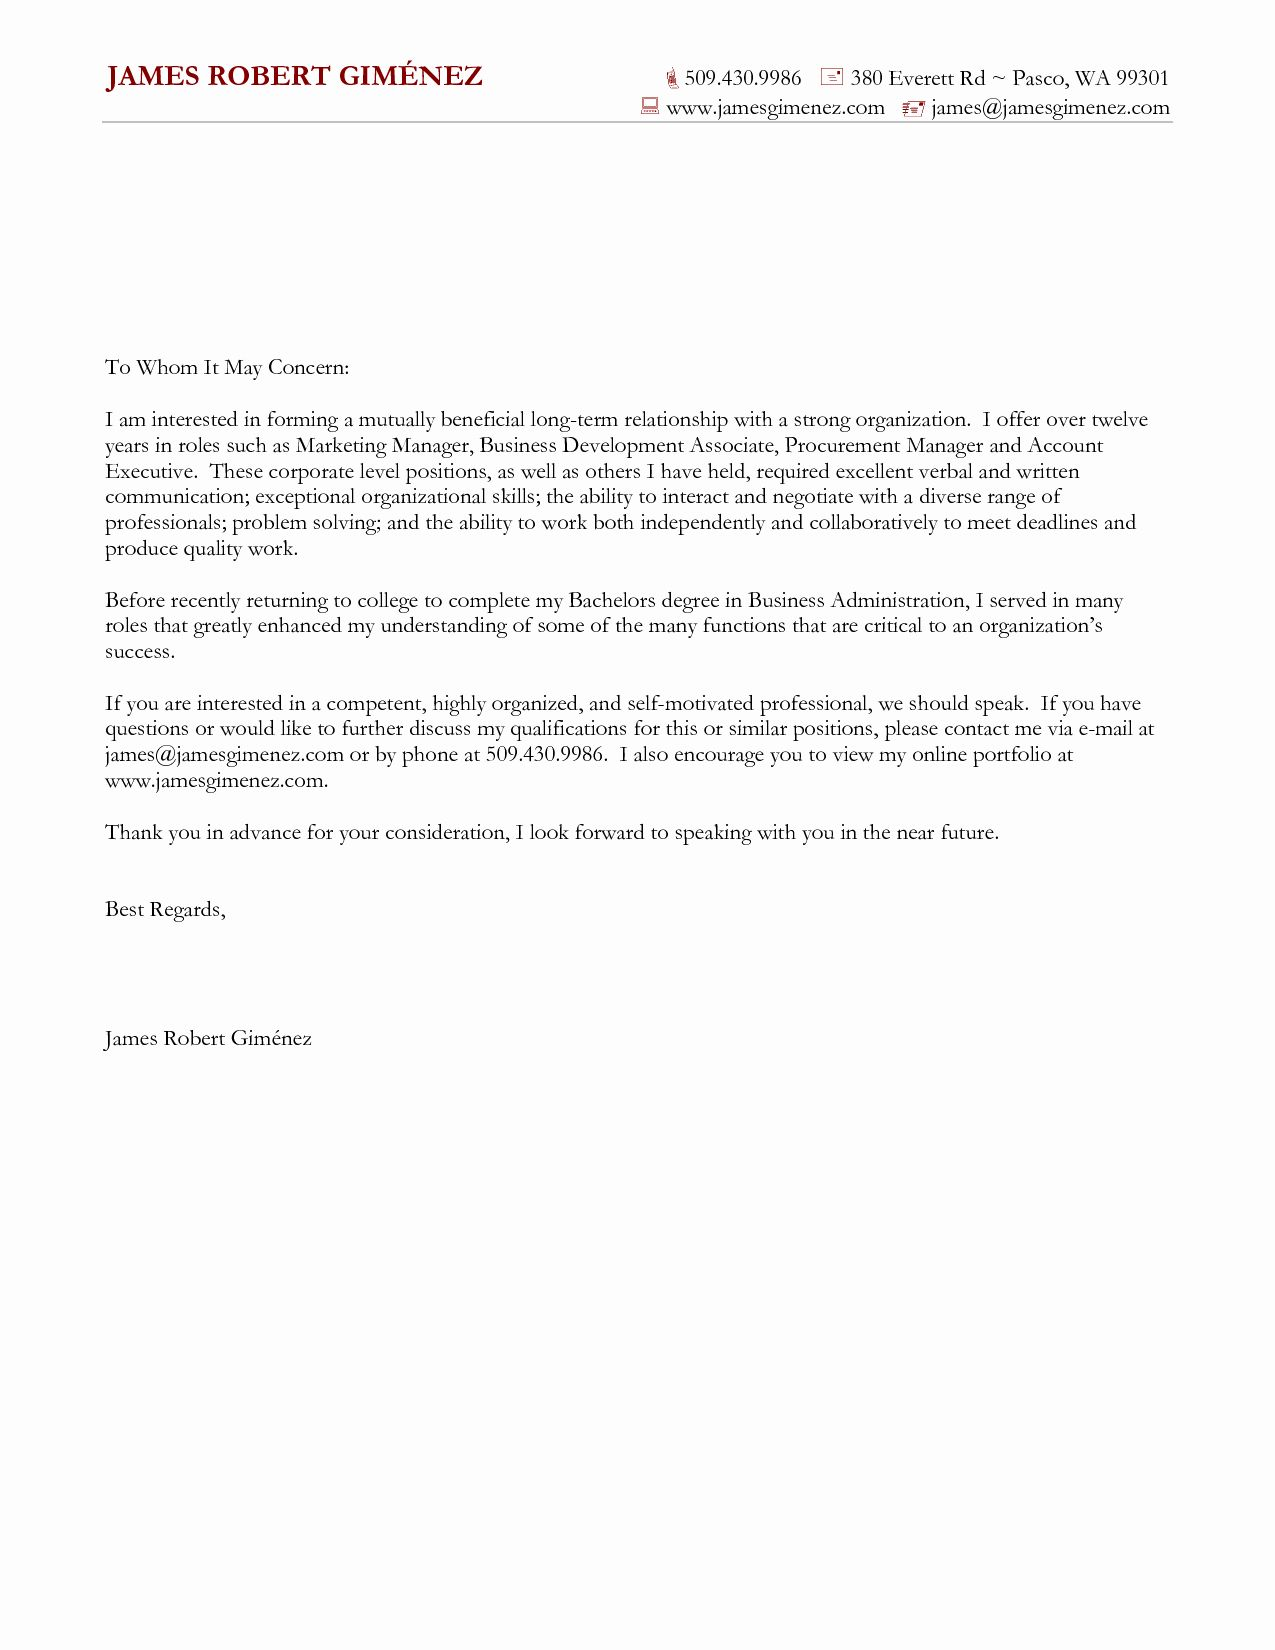 30 general cover letter examples in 2020